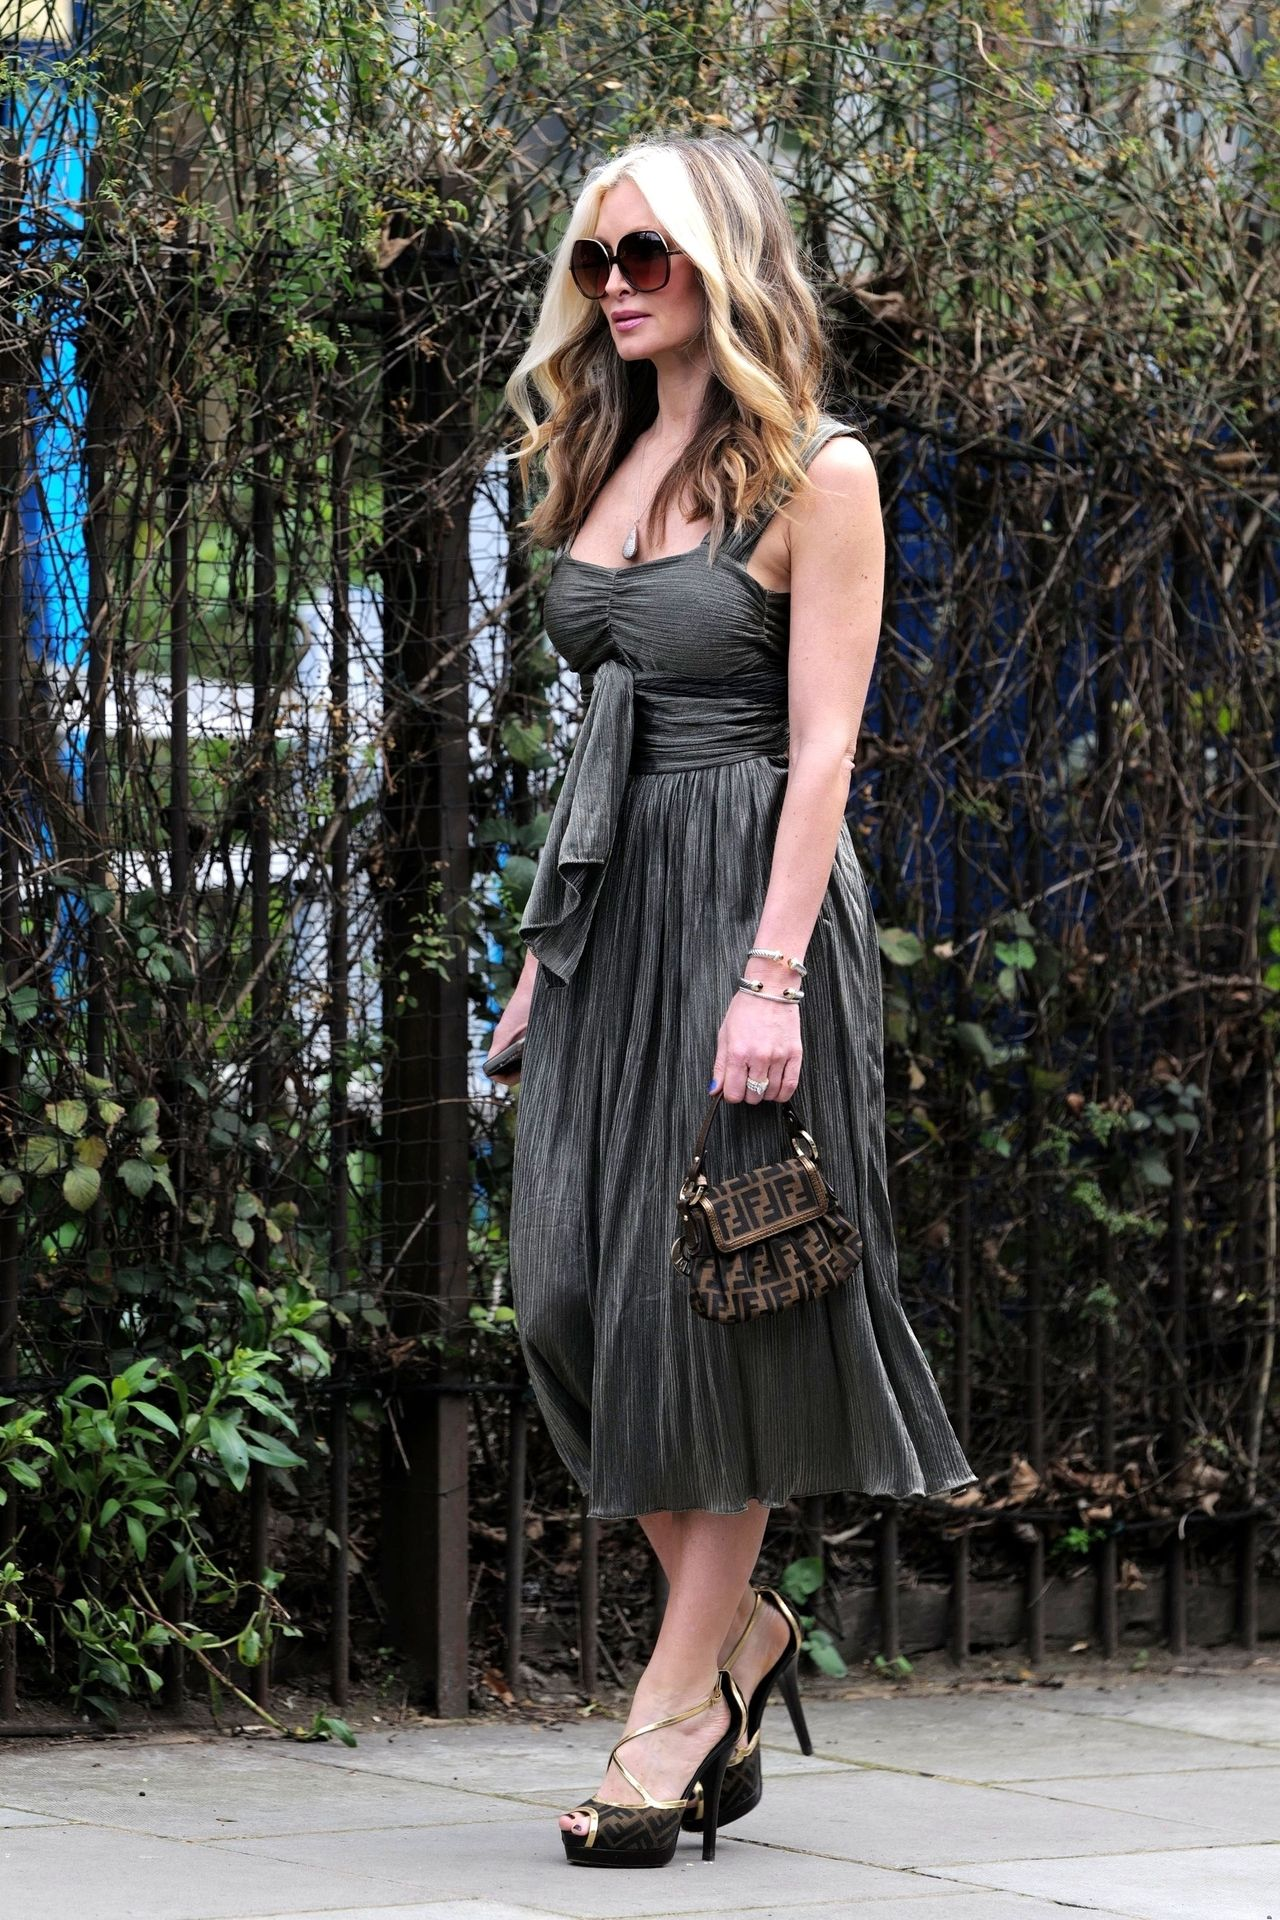 Caprice Bourret Steps Out Looking Glamorous In London 0011